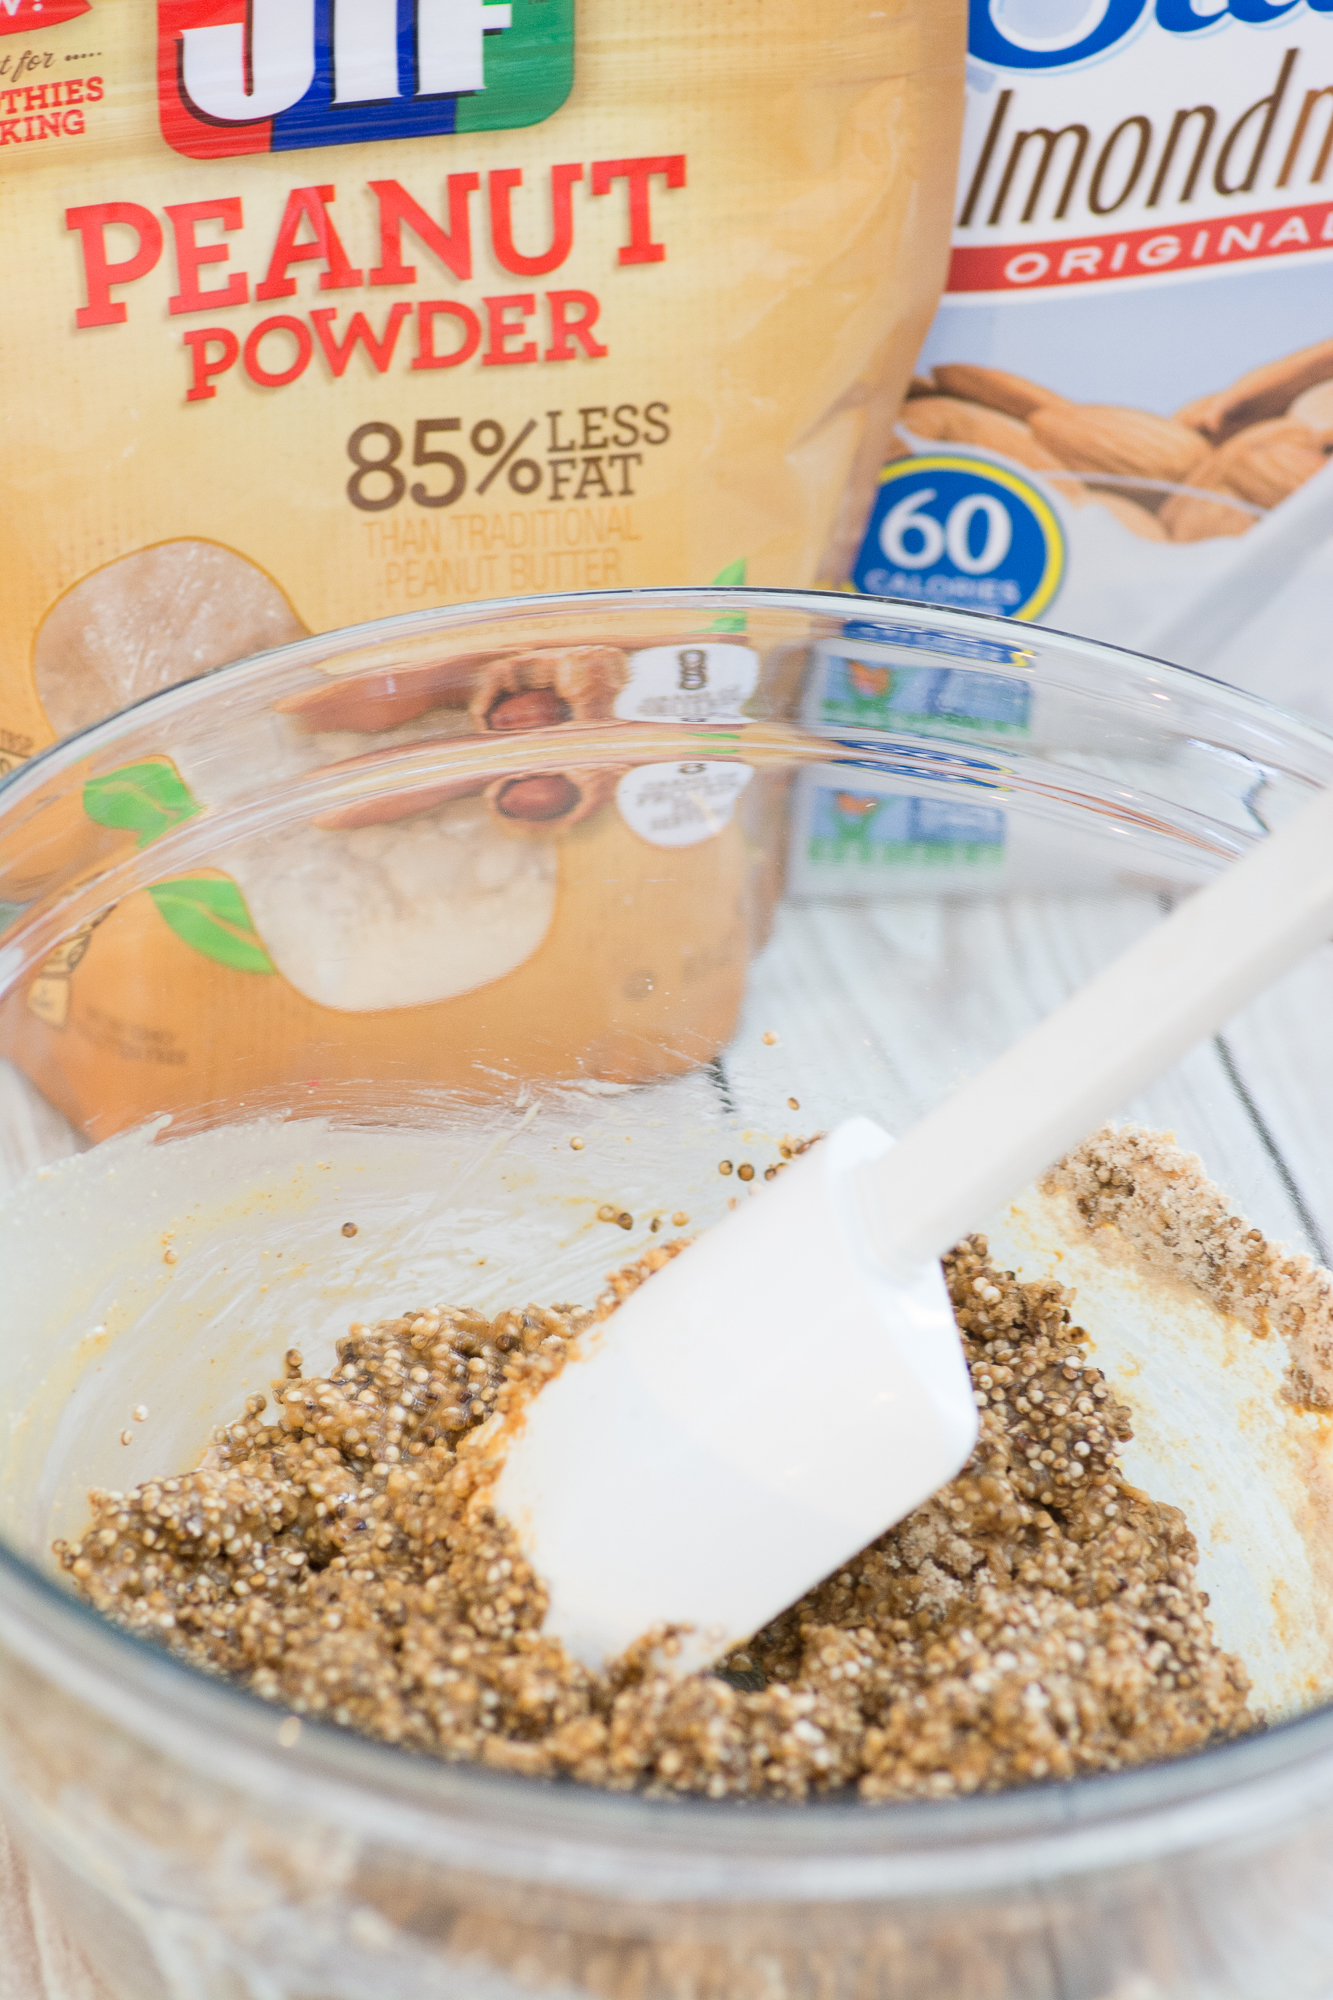 Tackle your New Year's resolutions with a little help from this protein packed recipe that easily stores in your fridge for a convenient, energy boosting snack!